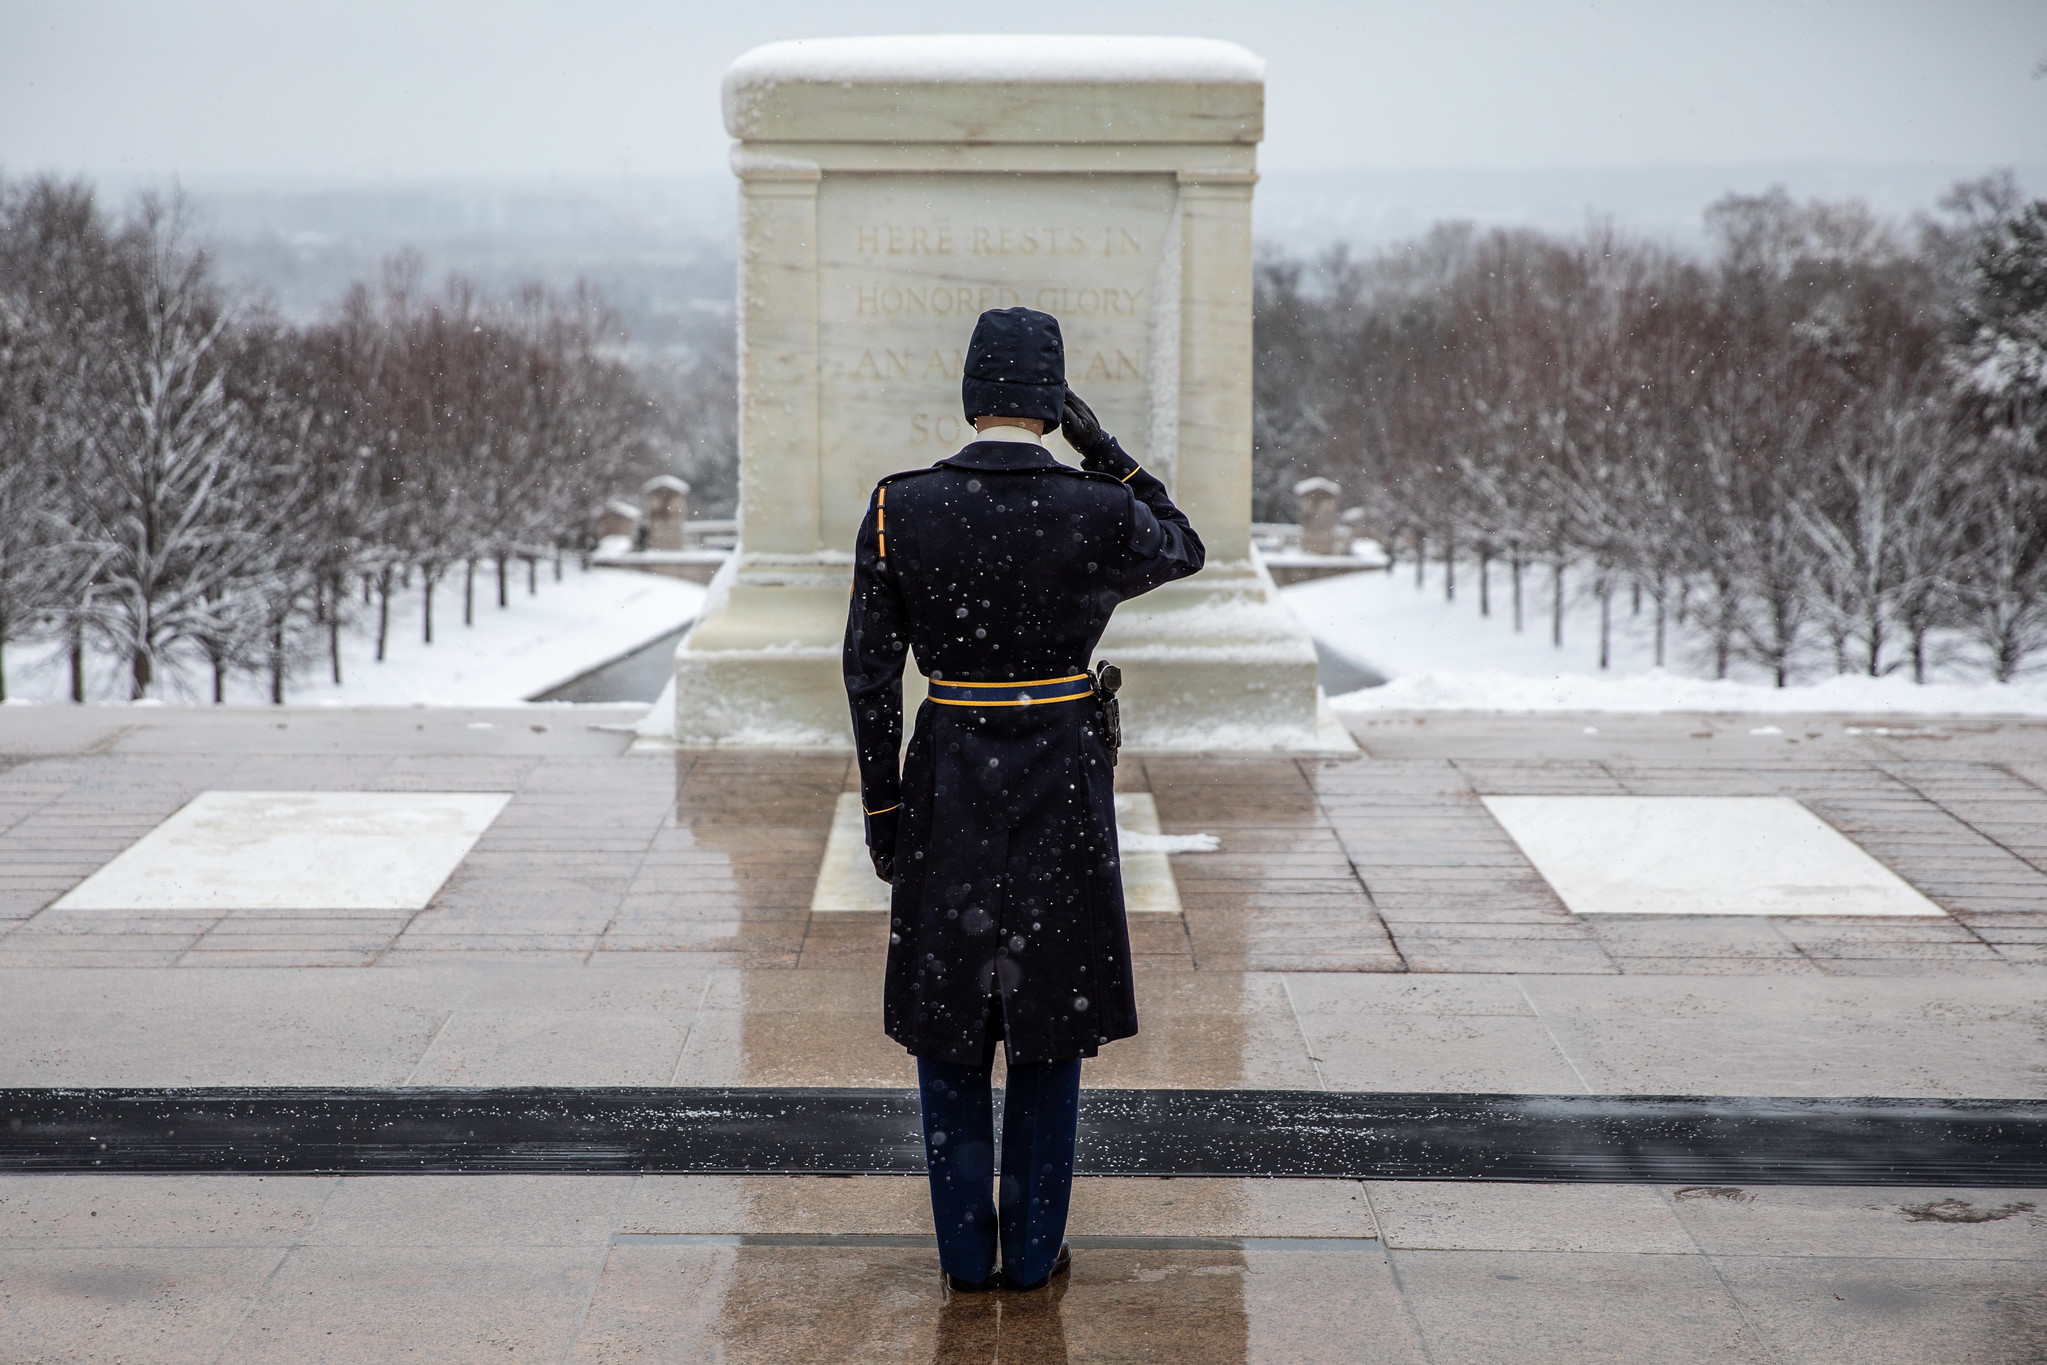 Soldiers assigned to the Tomb of the Unknown Soldier, Headquarters and Headquarters Co., 4th Battalion, 3d U.S. Infantry Regiment (The Old Guard) maintain their 83-year vigil at the Tomb of the Unknown Soldier, Arlington National Cemetery, Arlington, Va., Feb. 2, 2021. (Sgt. Jacob Holmes/Army)